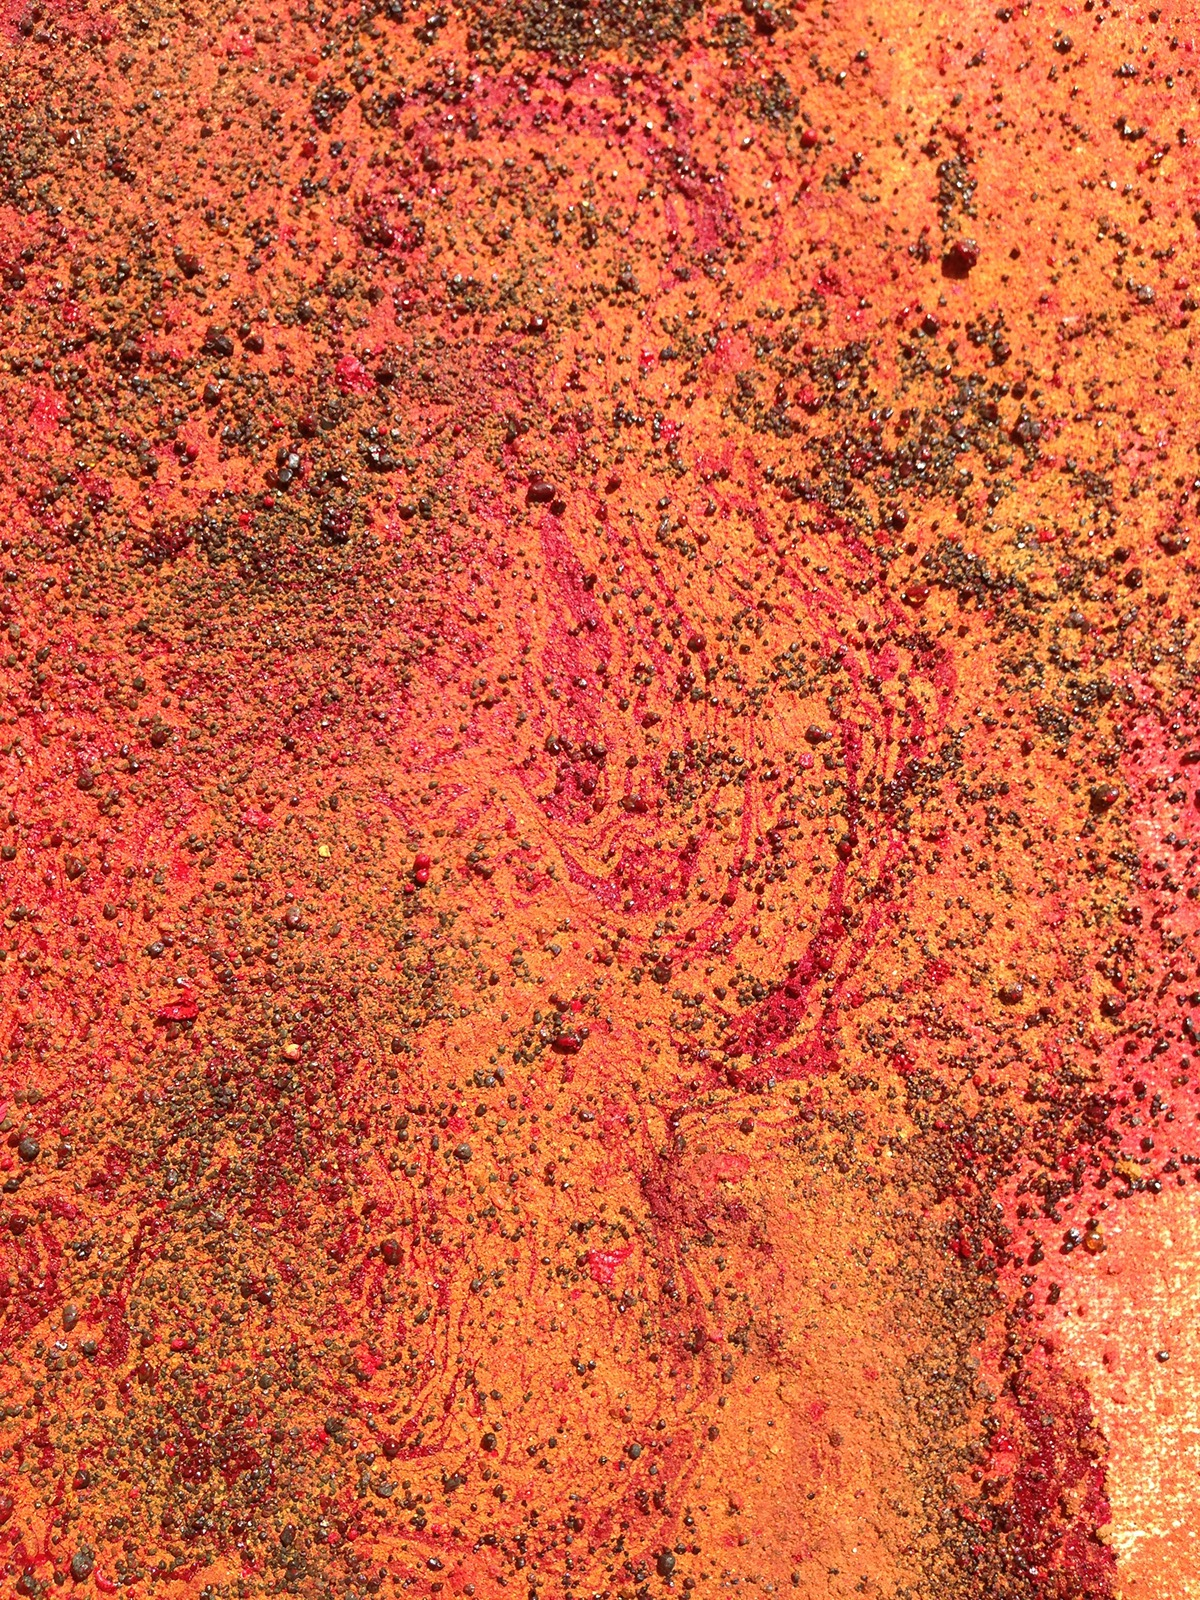 soilpainting acrylic Landscape abstract contenporary red mars